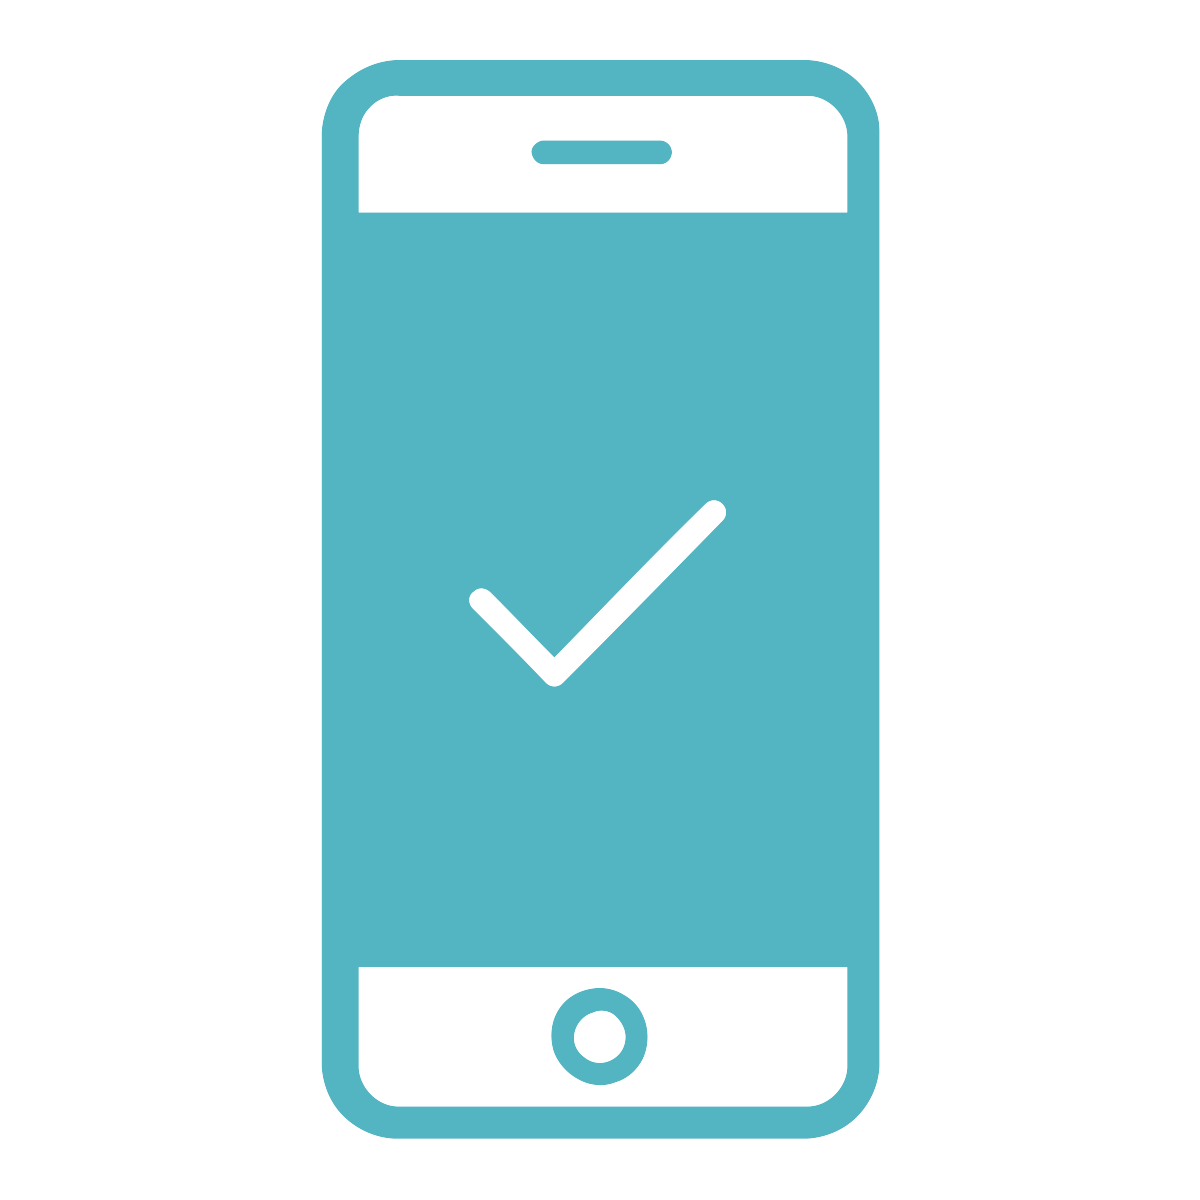 MOBILE READY - Training is available anywhere, at any time. Most courses on CollaborNation are mobile-compatible, for team members who want to use their tablet or phone to access training.